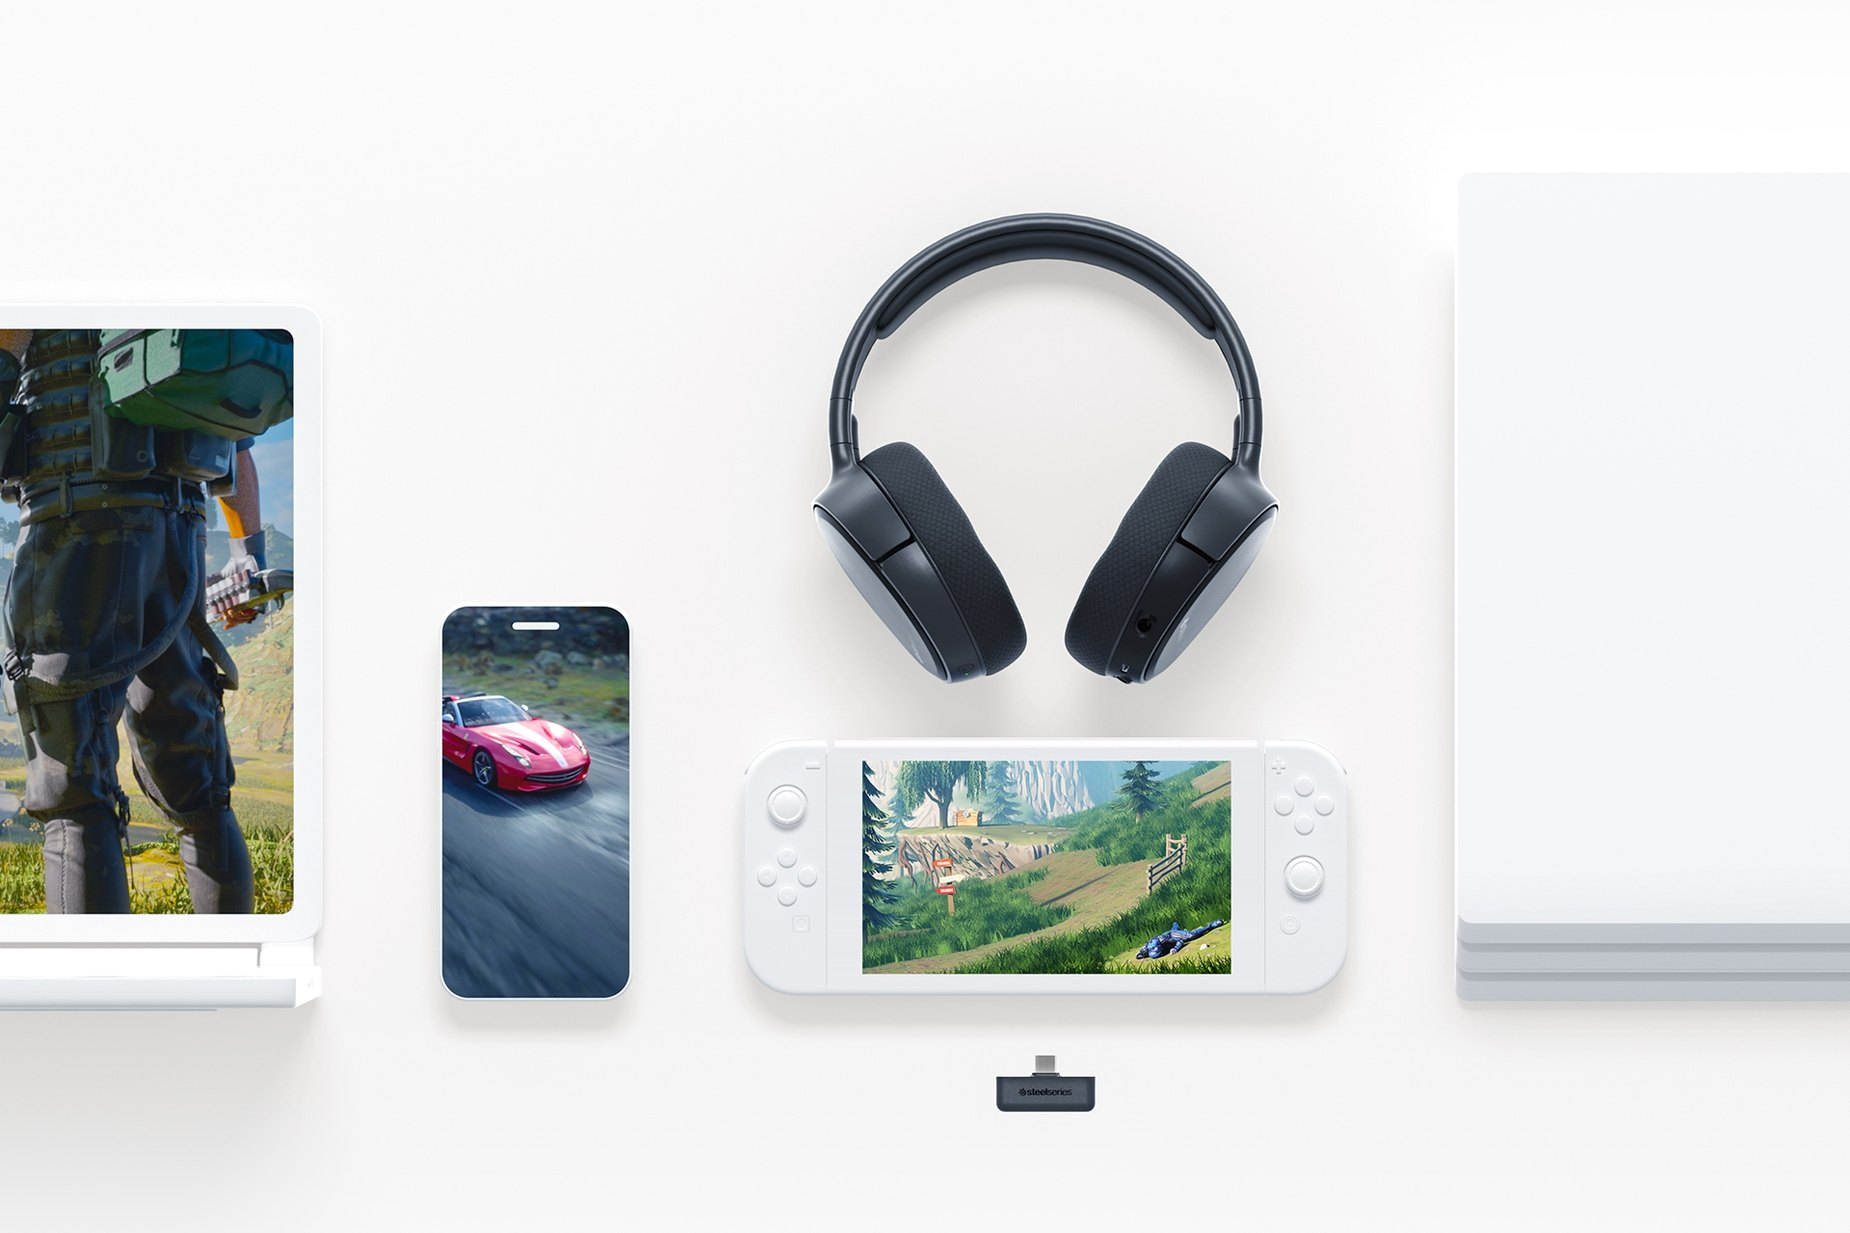 An Arctis 1 Wireless headset next to a Nintendo Switch, PlayStation 4, mobile phone, and tablet